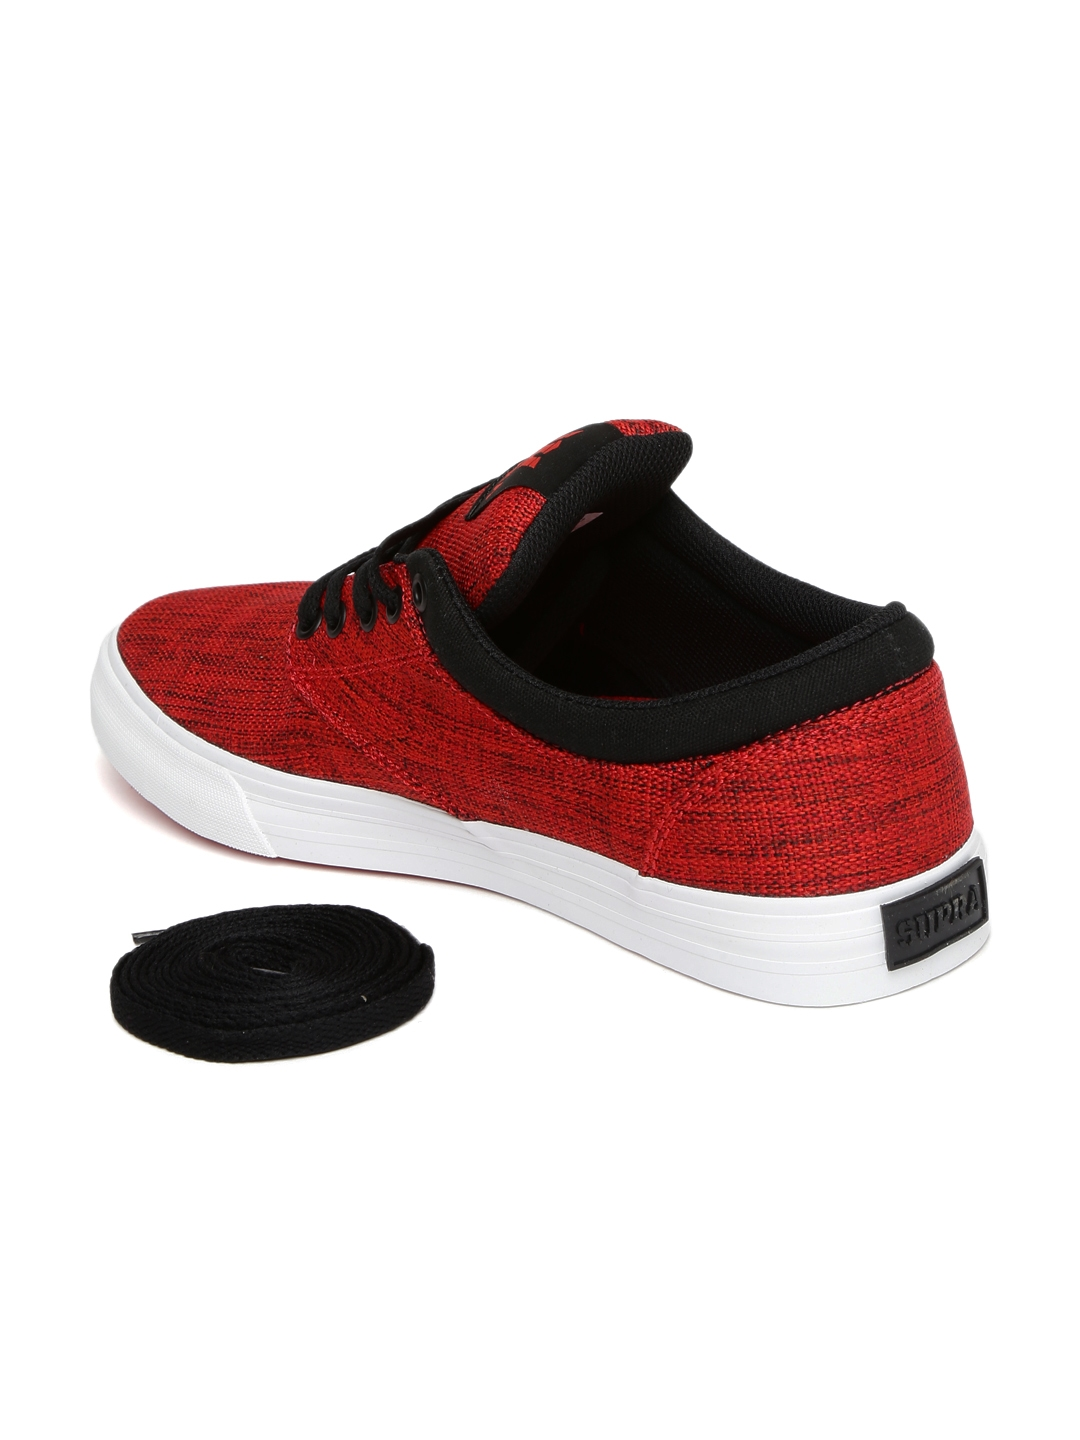 316cfc4a98d7 Buy Supra Men Red CHINO Skate Shoes - Casual Shoes for Men 2001912 ...